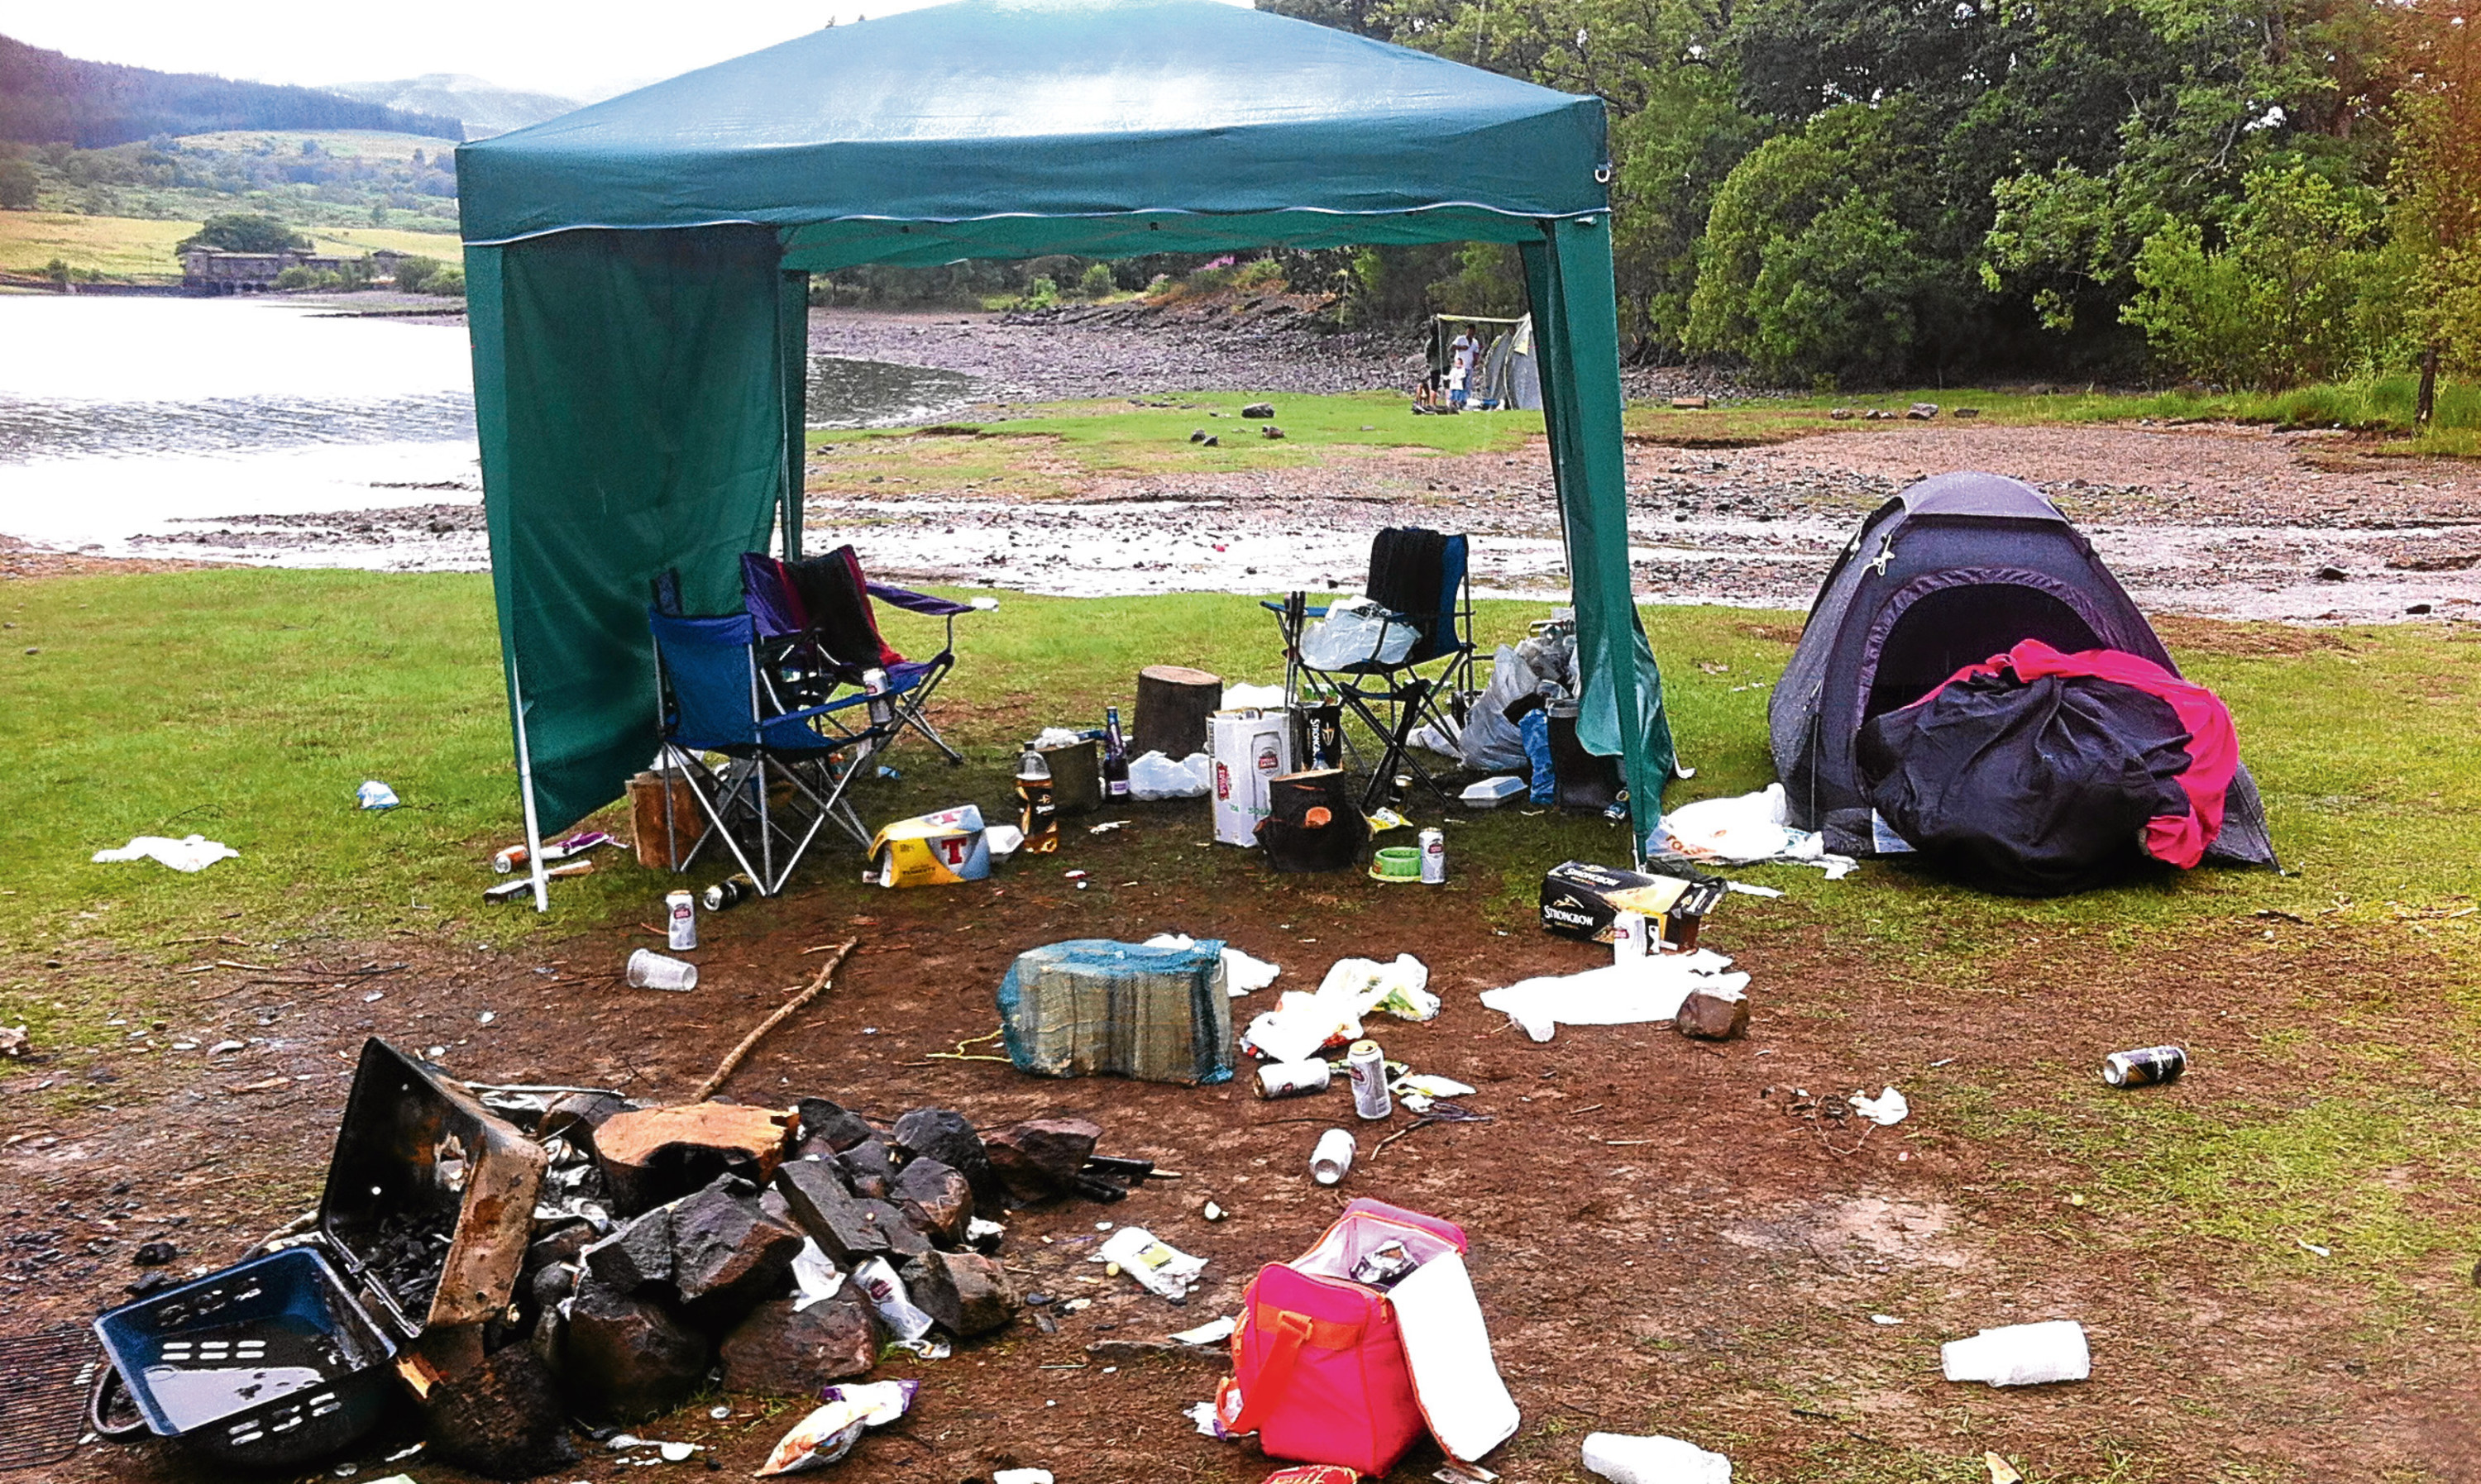 Mess left on a Scottish lochside by inconsiderate campers.